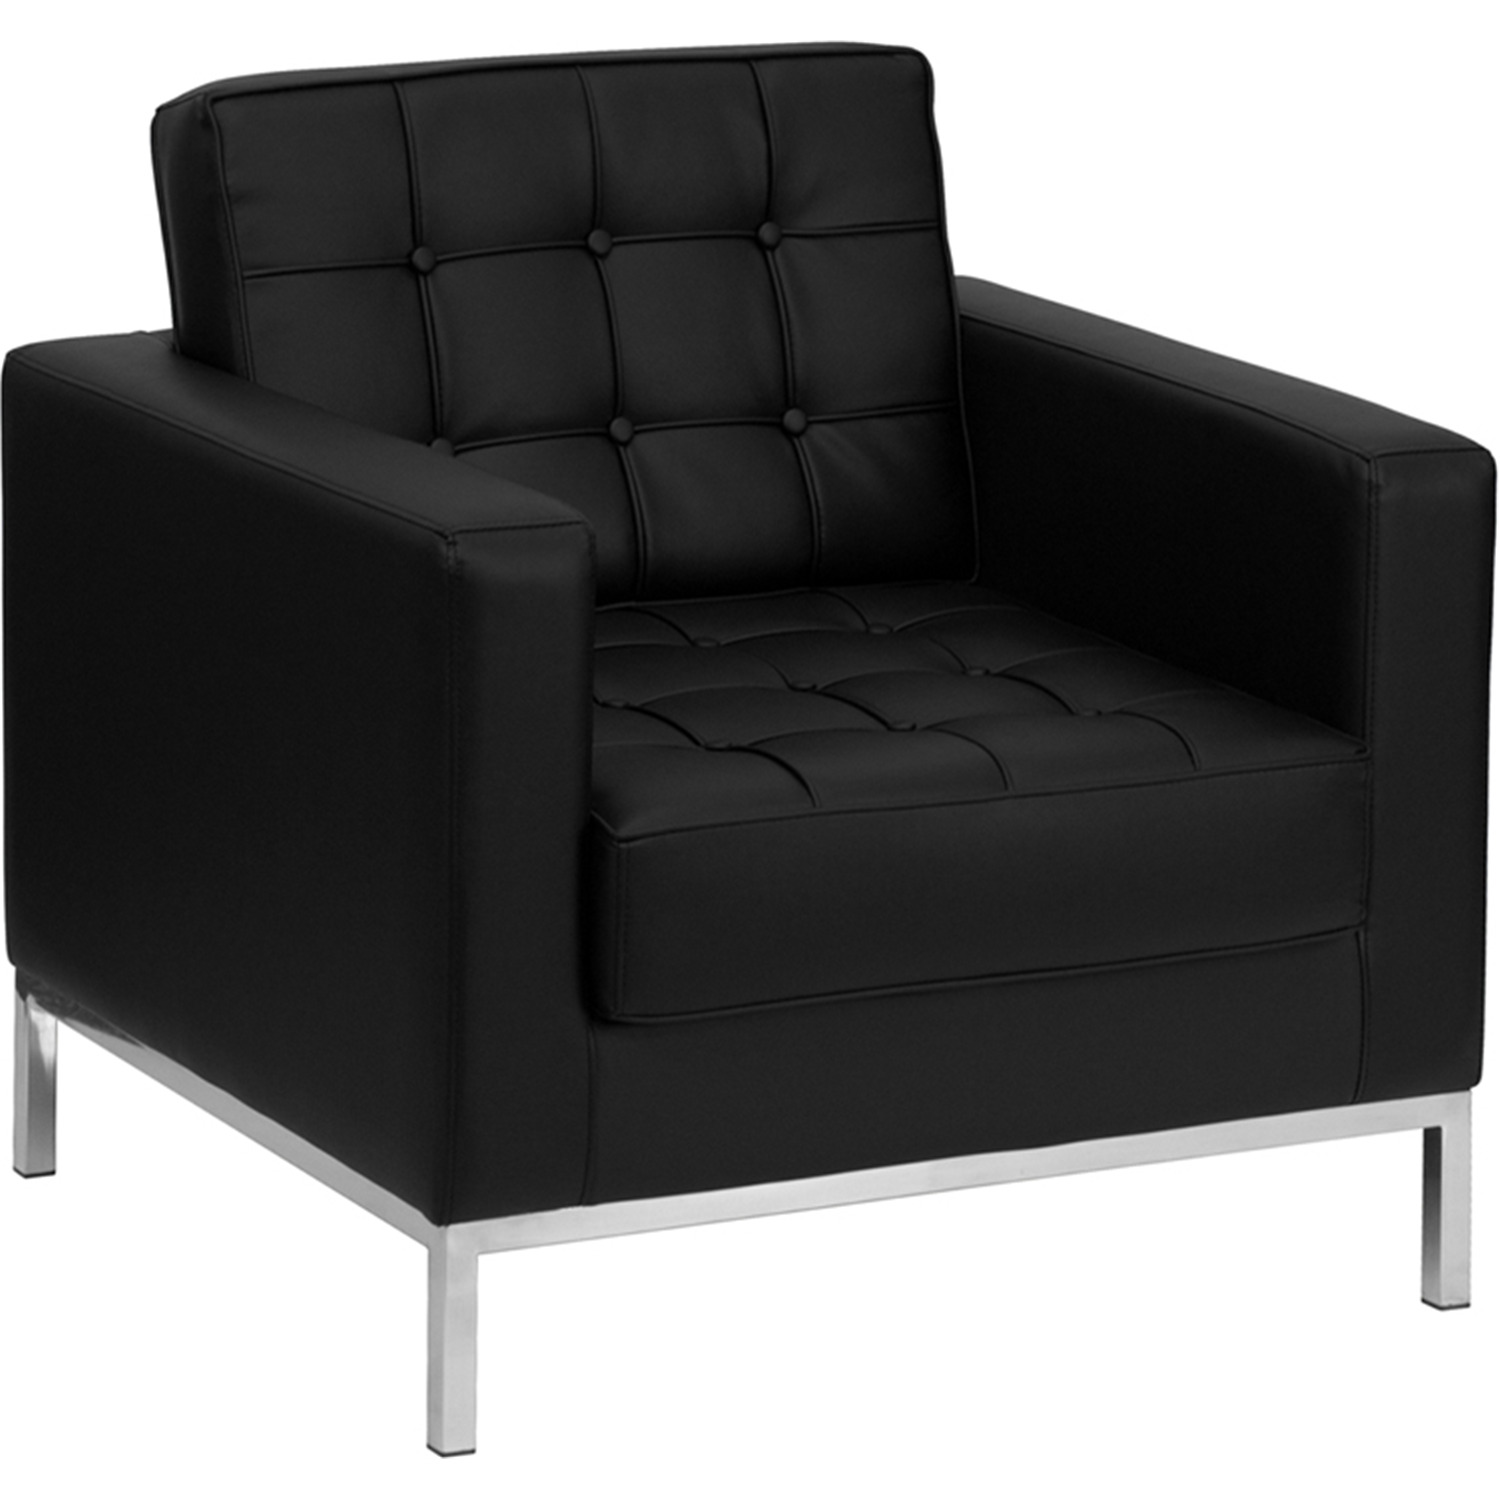 hercules lacey series contemporary black leather chair with stainless